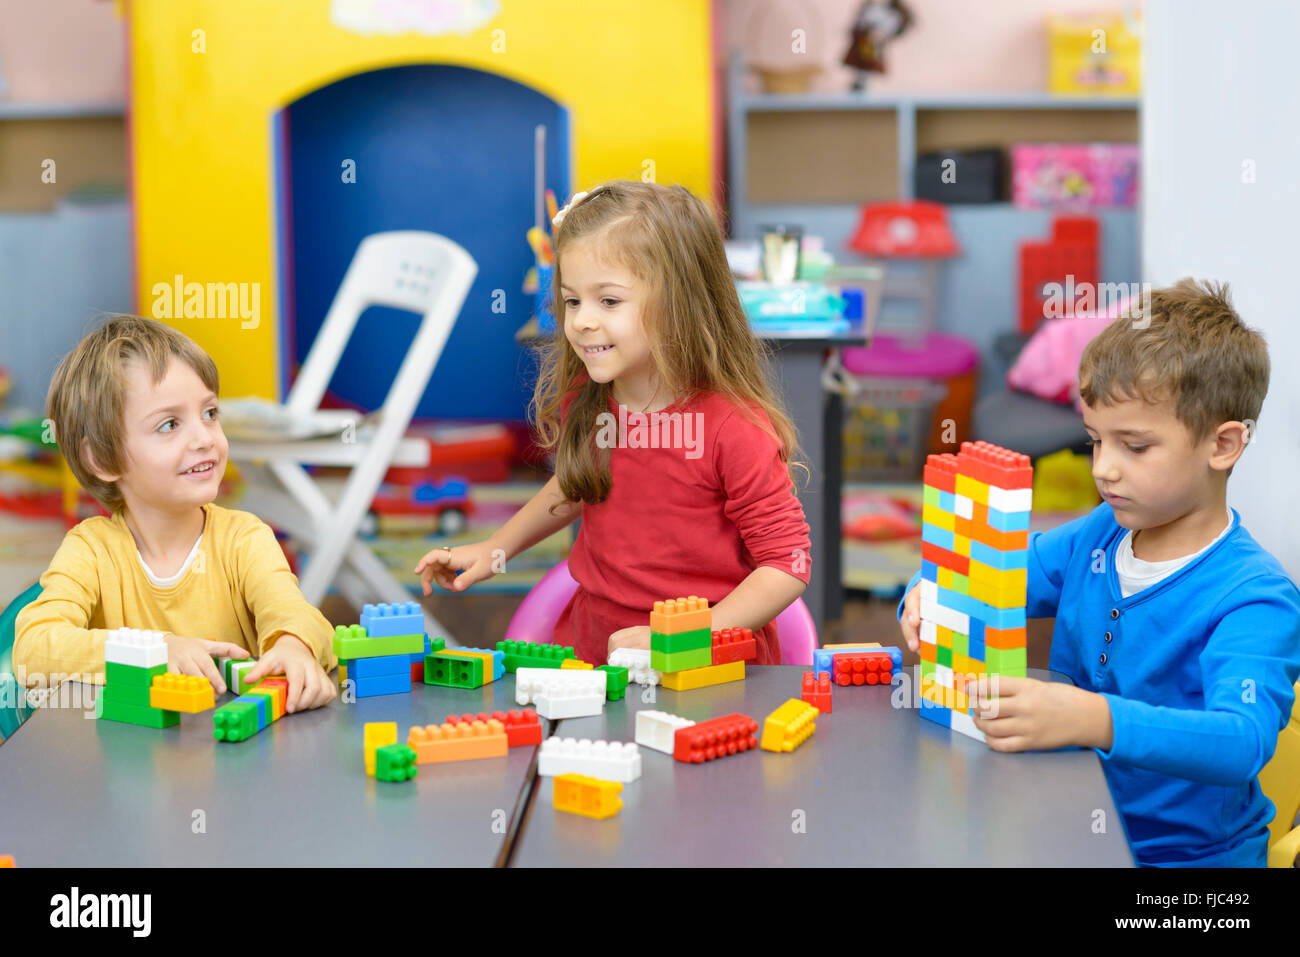 Three happy kids playing with plastic building blocks at kindergarten - Stock Image